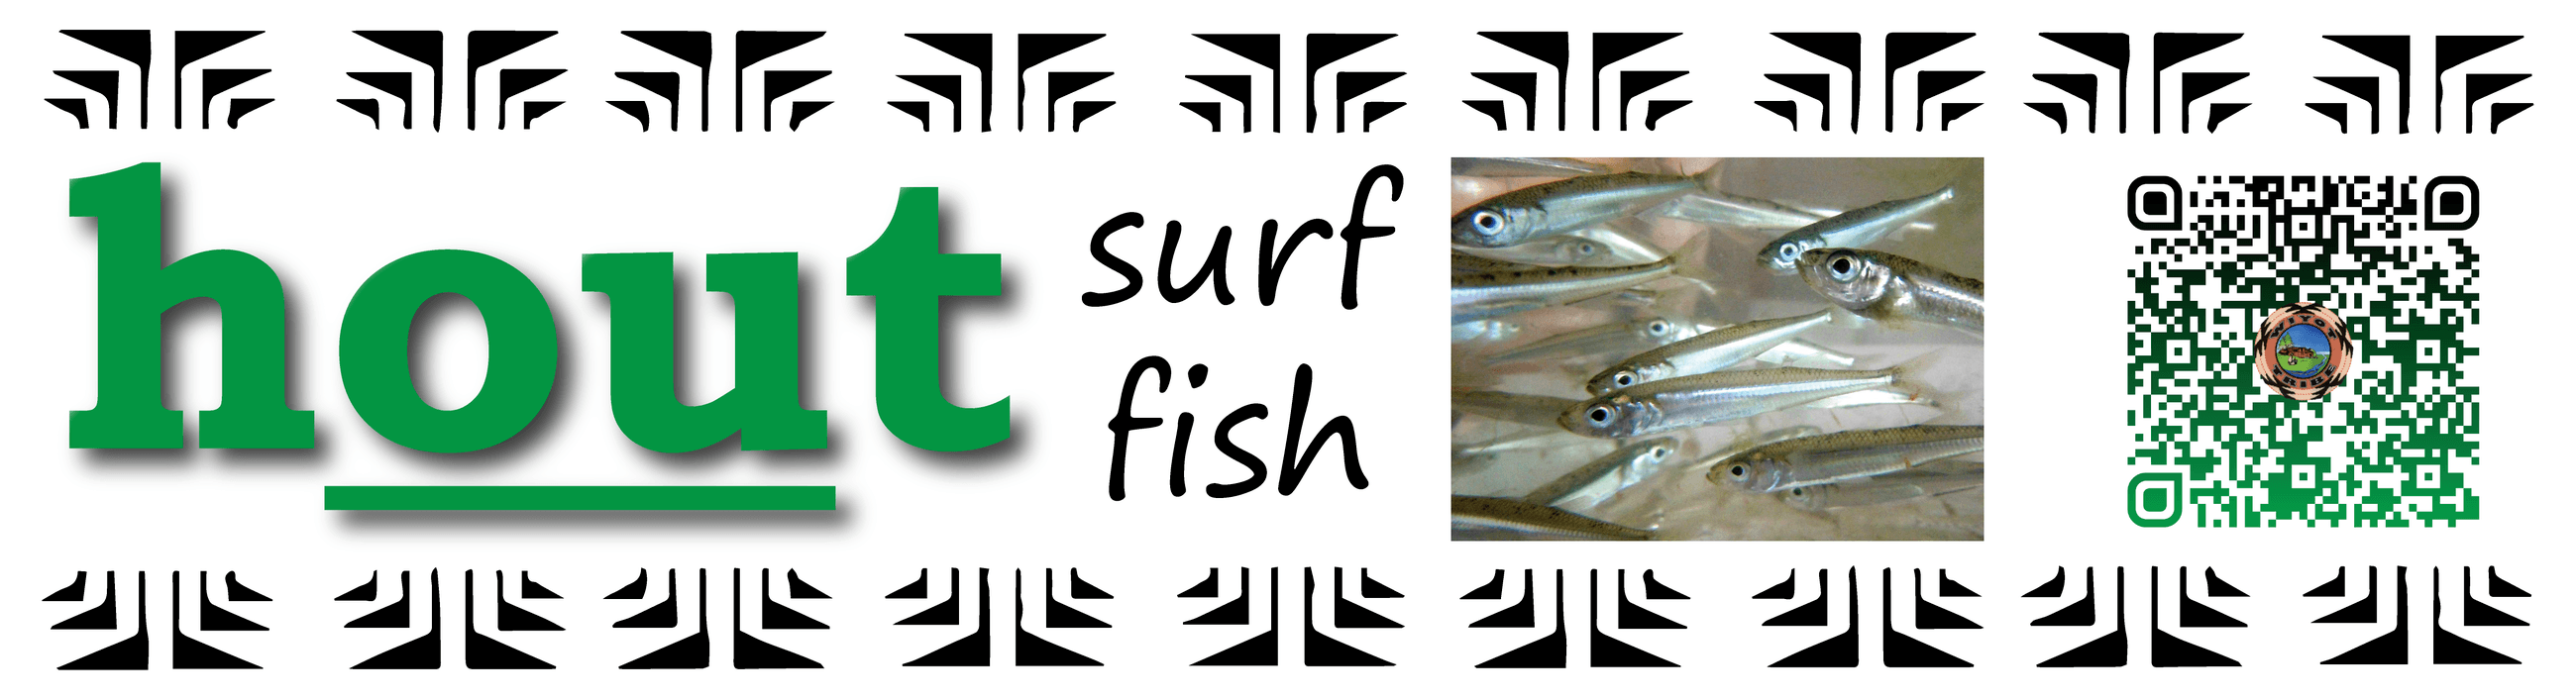 Pronunciation vocabulary primer_OUou_hout_surf_fish